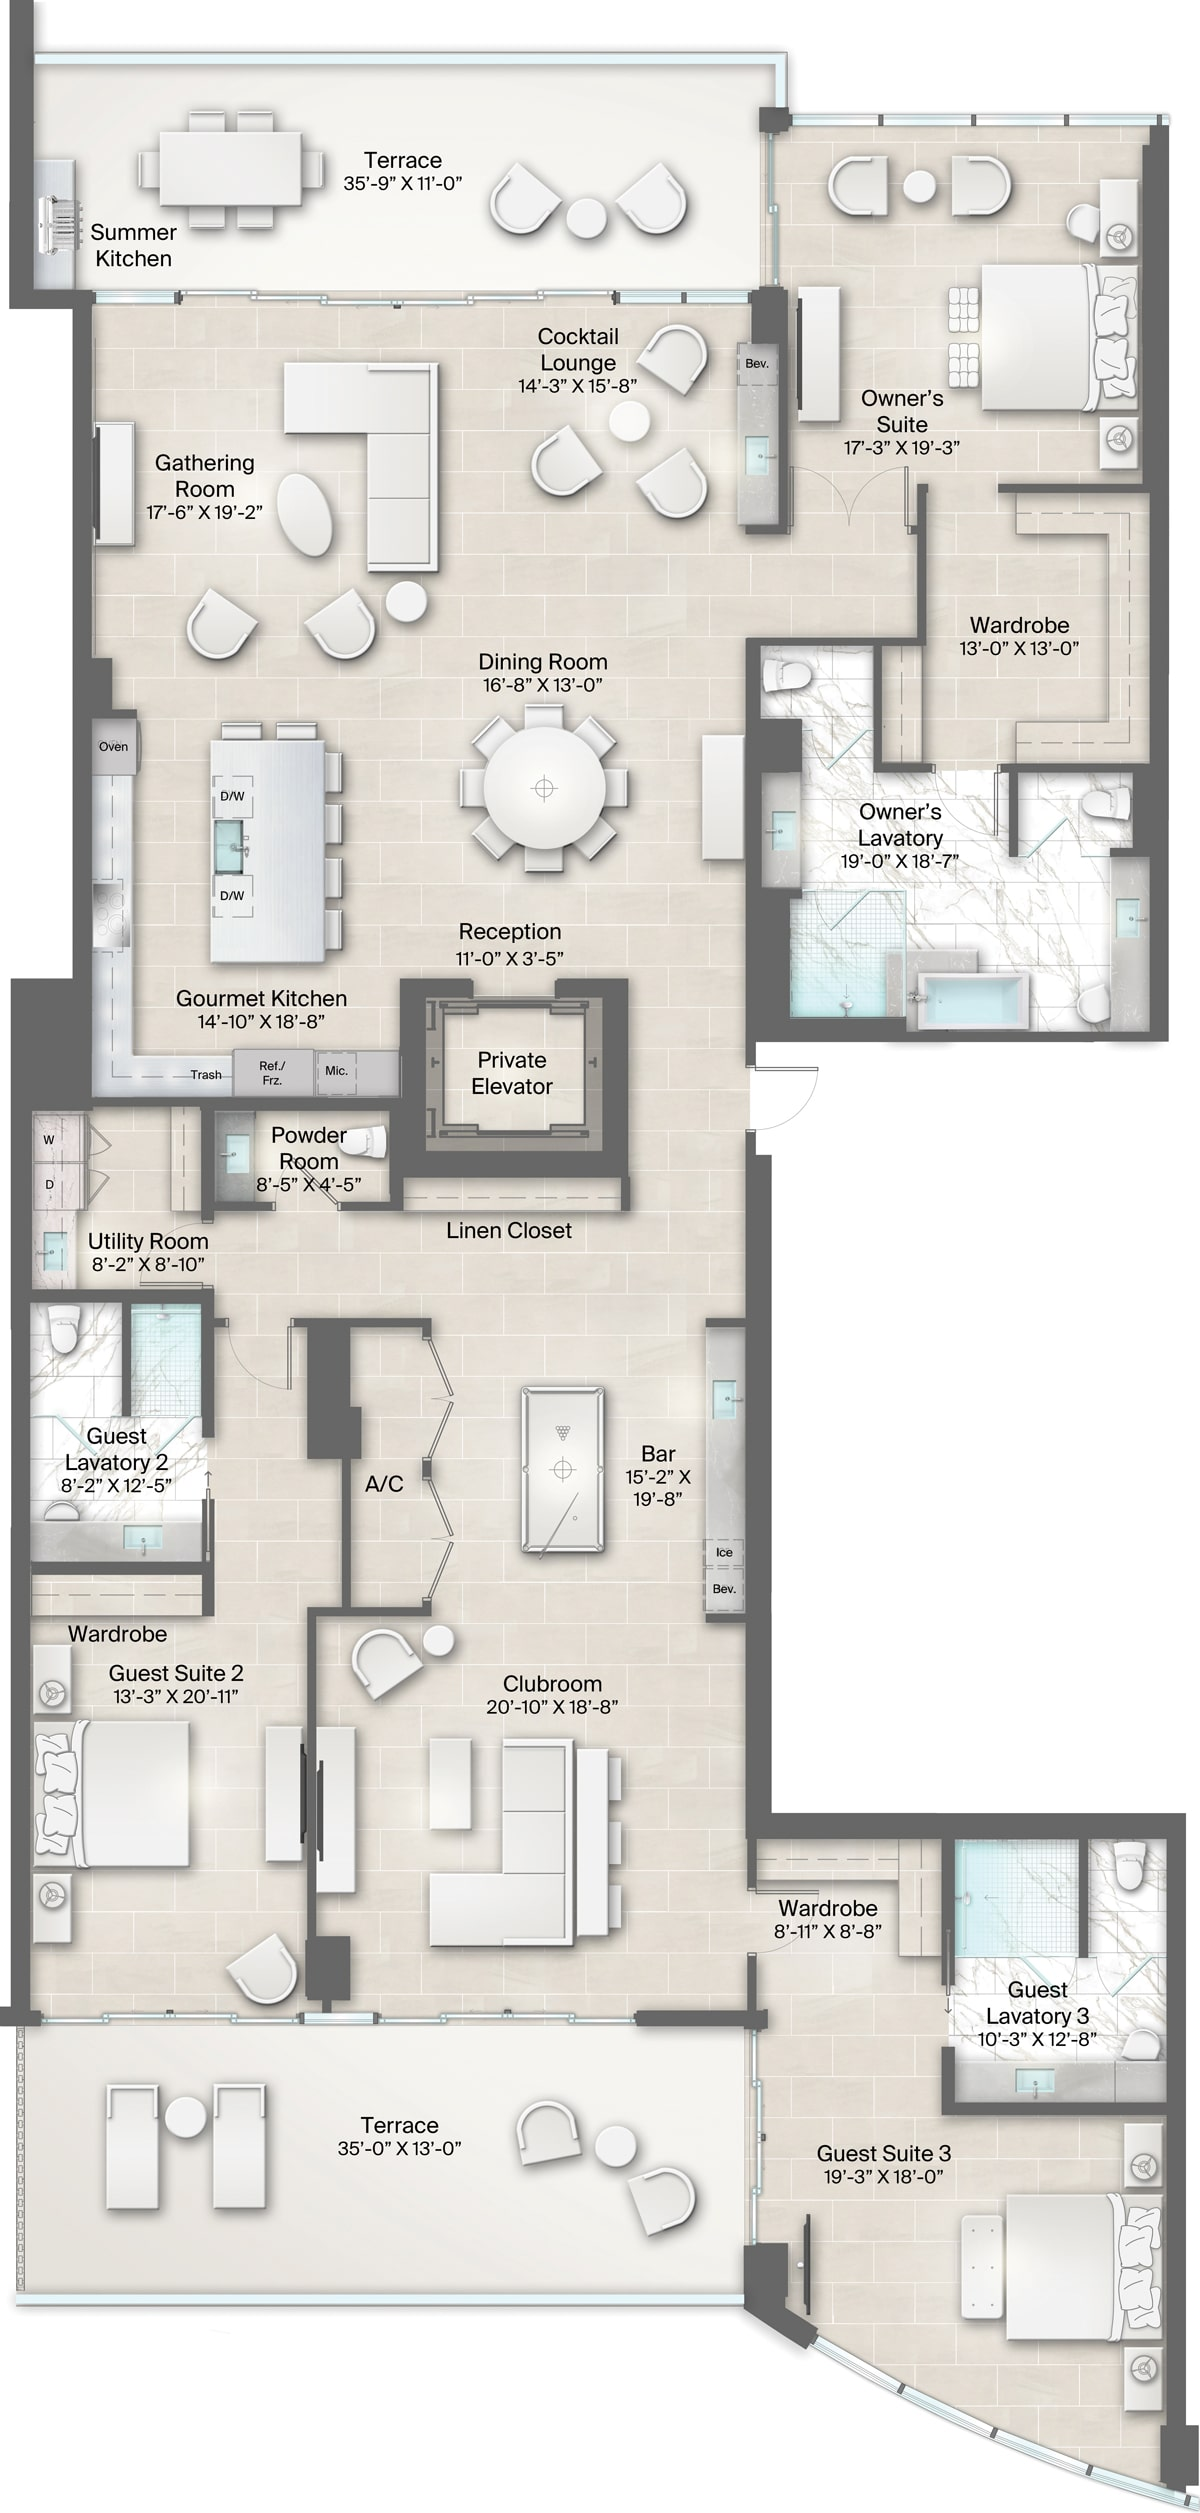 Armand Building, Plan 3 Floorplan includes 3 bedrooms, 3.5 baths, clubroom and 2 terraces